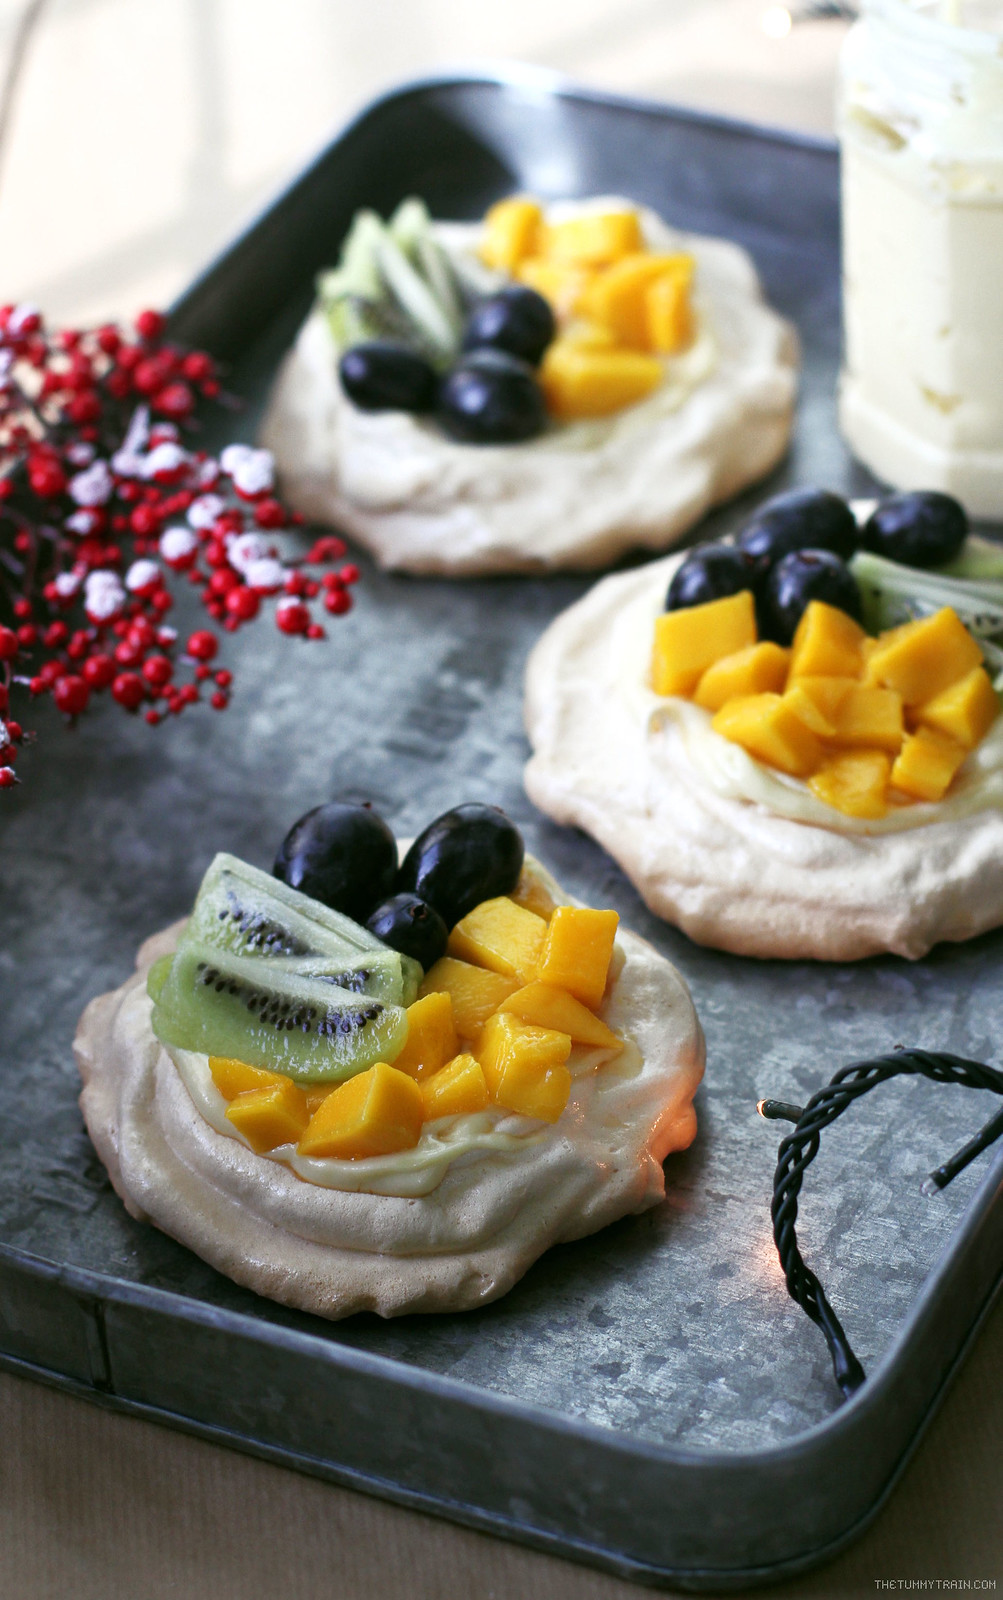 31605077112 5a74b2f19b h - Pavlova topped with cream and fruits make for a beautiful Christmas dessert [VIDEO]